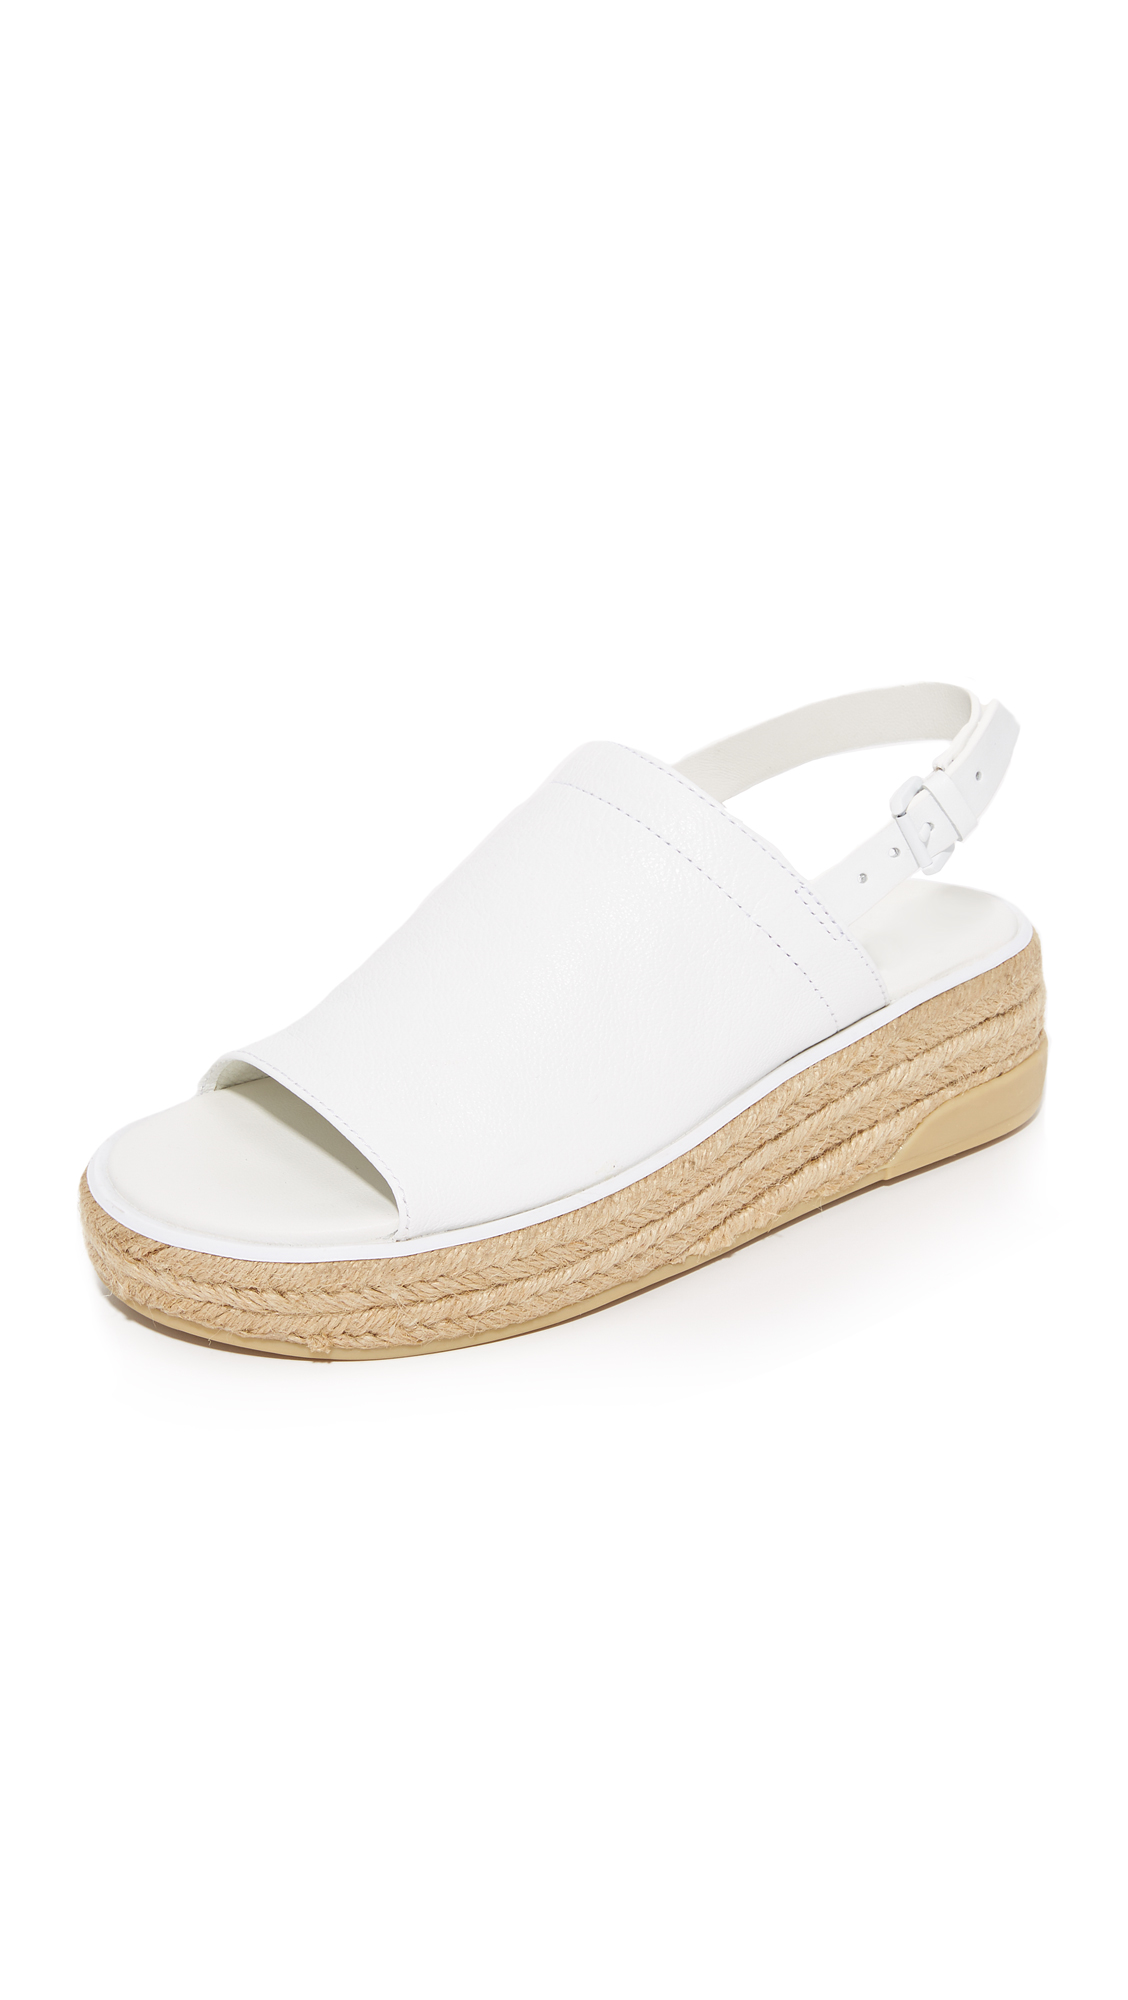 DKNY Sally Leather Espadrille Sandals - White